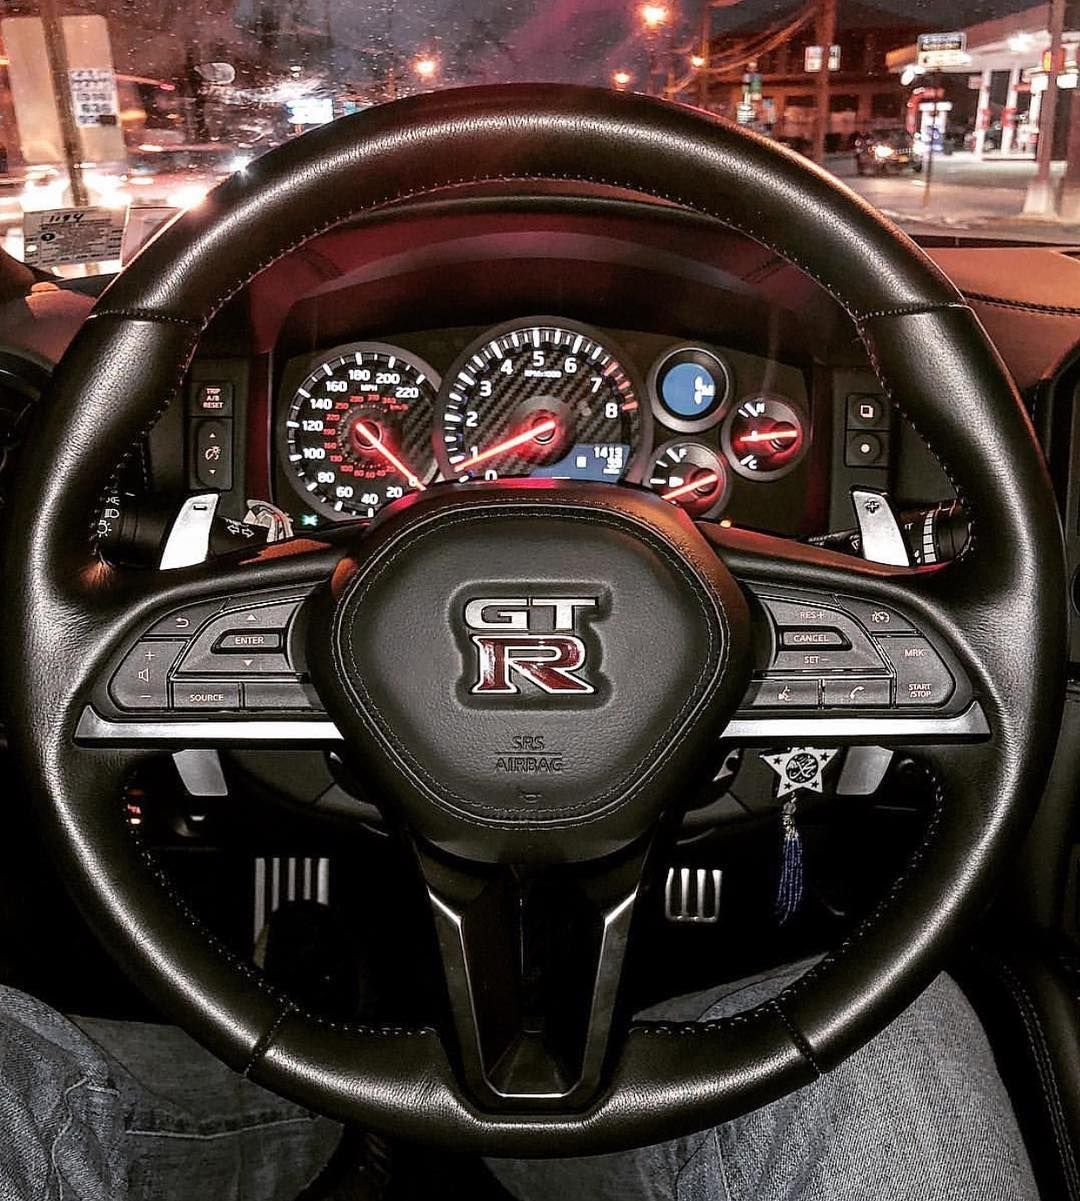 701 Moy Aresei 5 Sxolia Official Godzillafan Account Godzillafan Sto Instagram Could Definitely Get Used To This View Owner Sleek スカイラインgt 高級車 日産